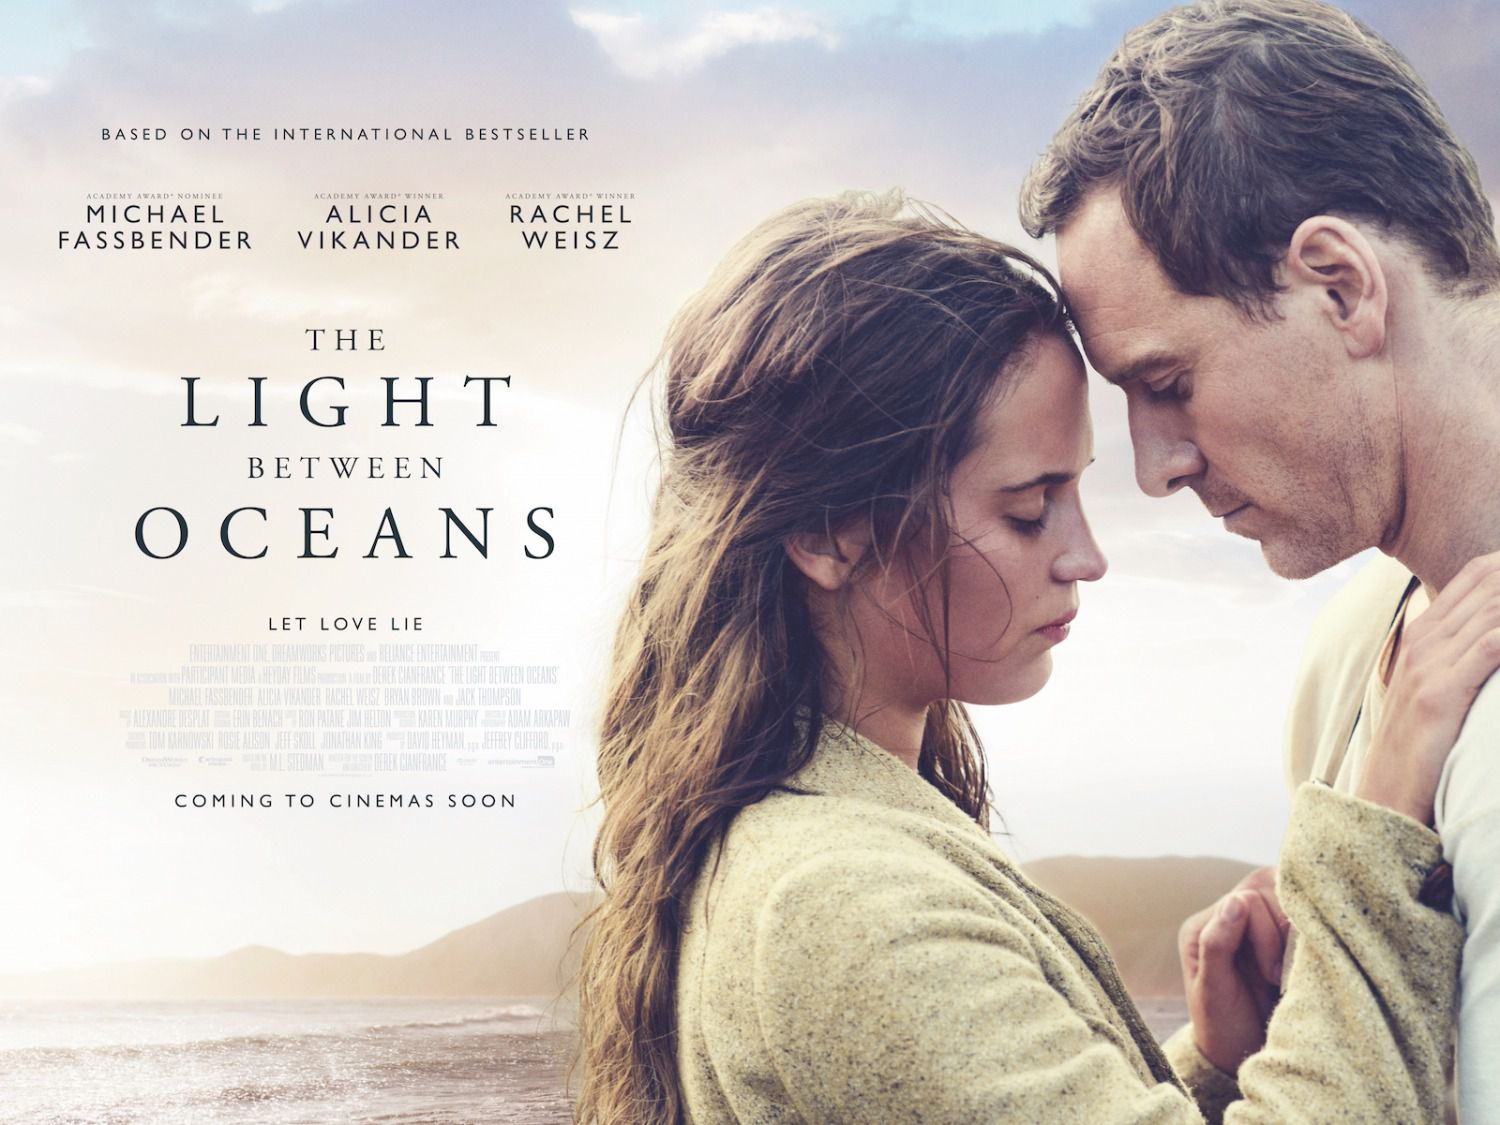 Light between Oceans poster